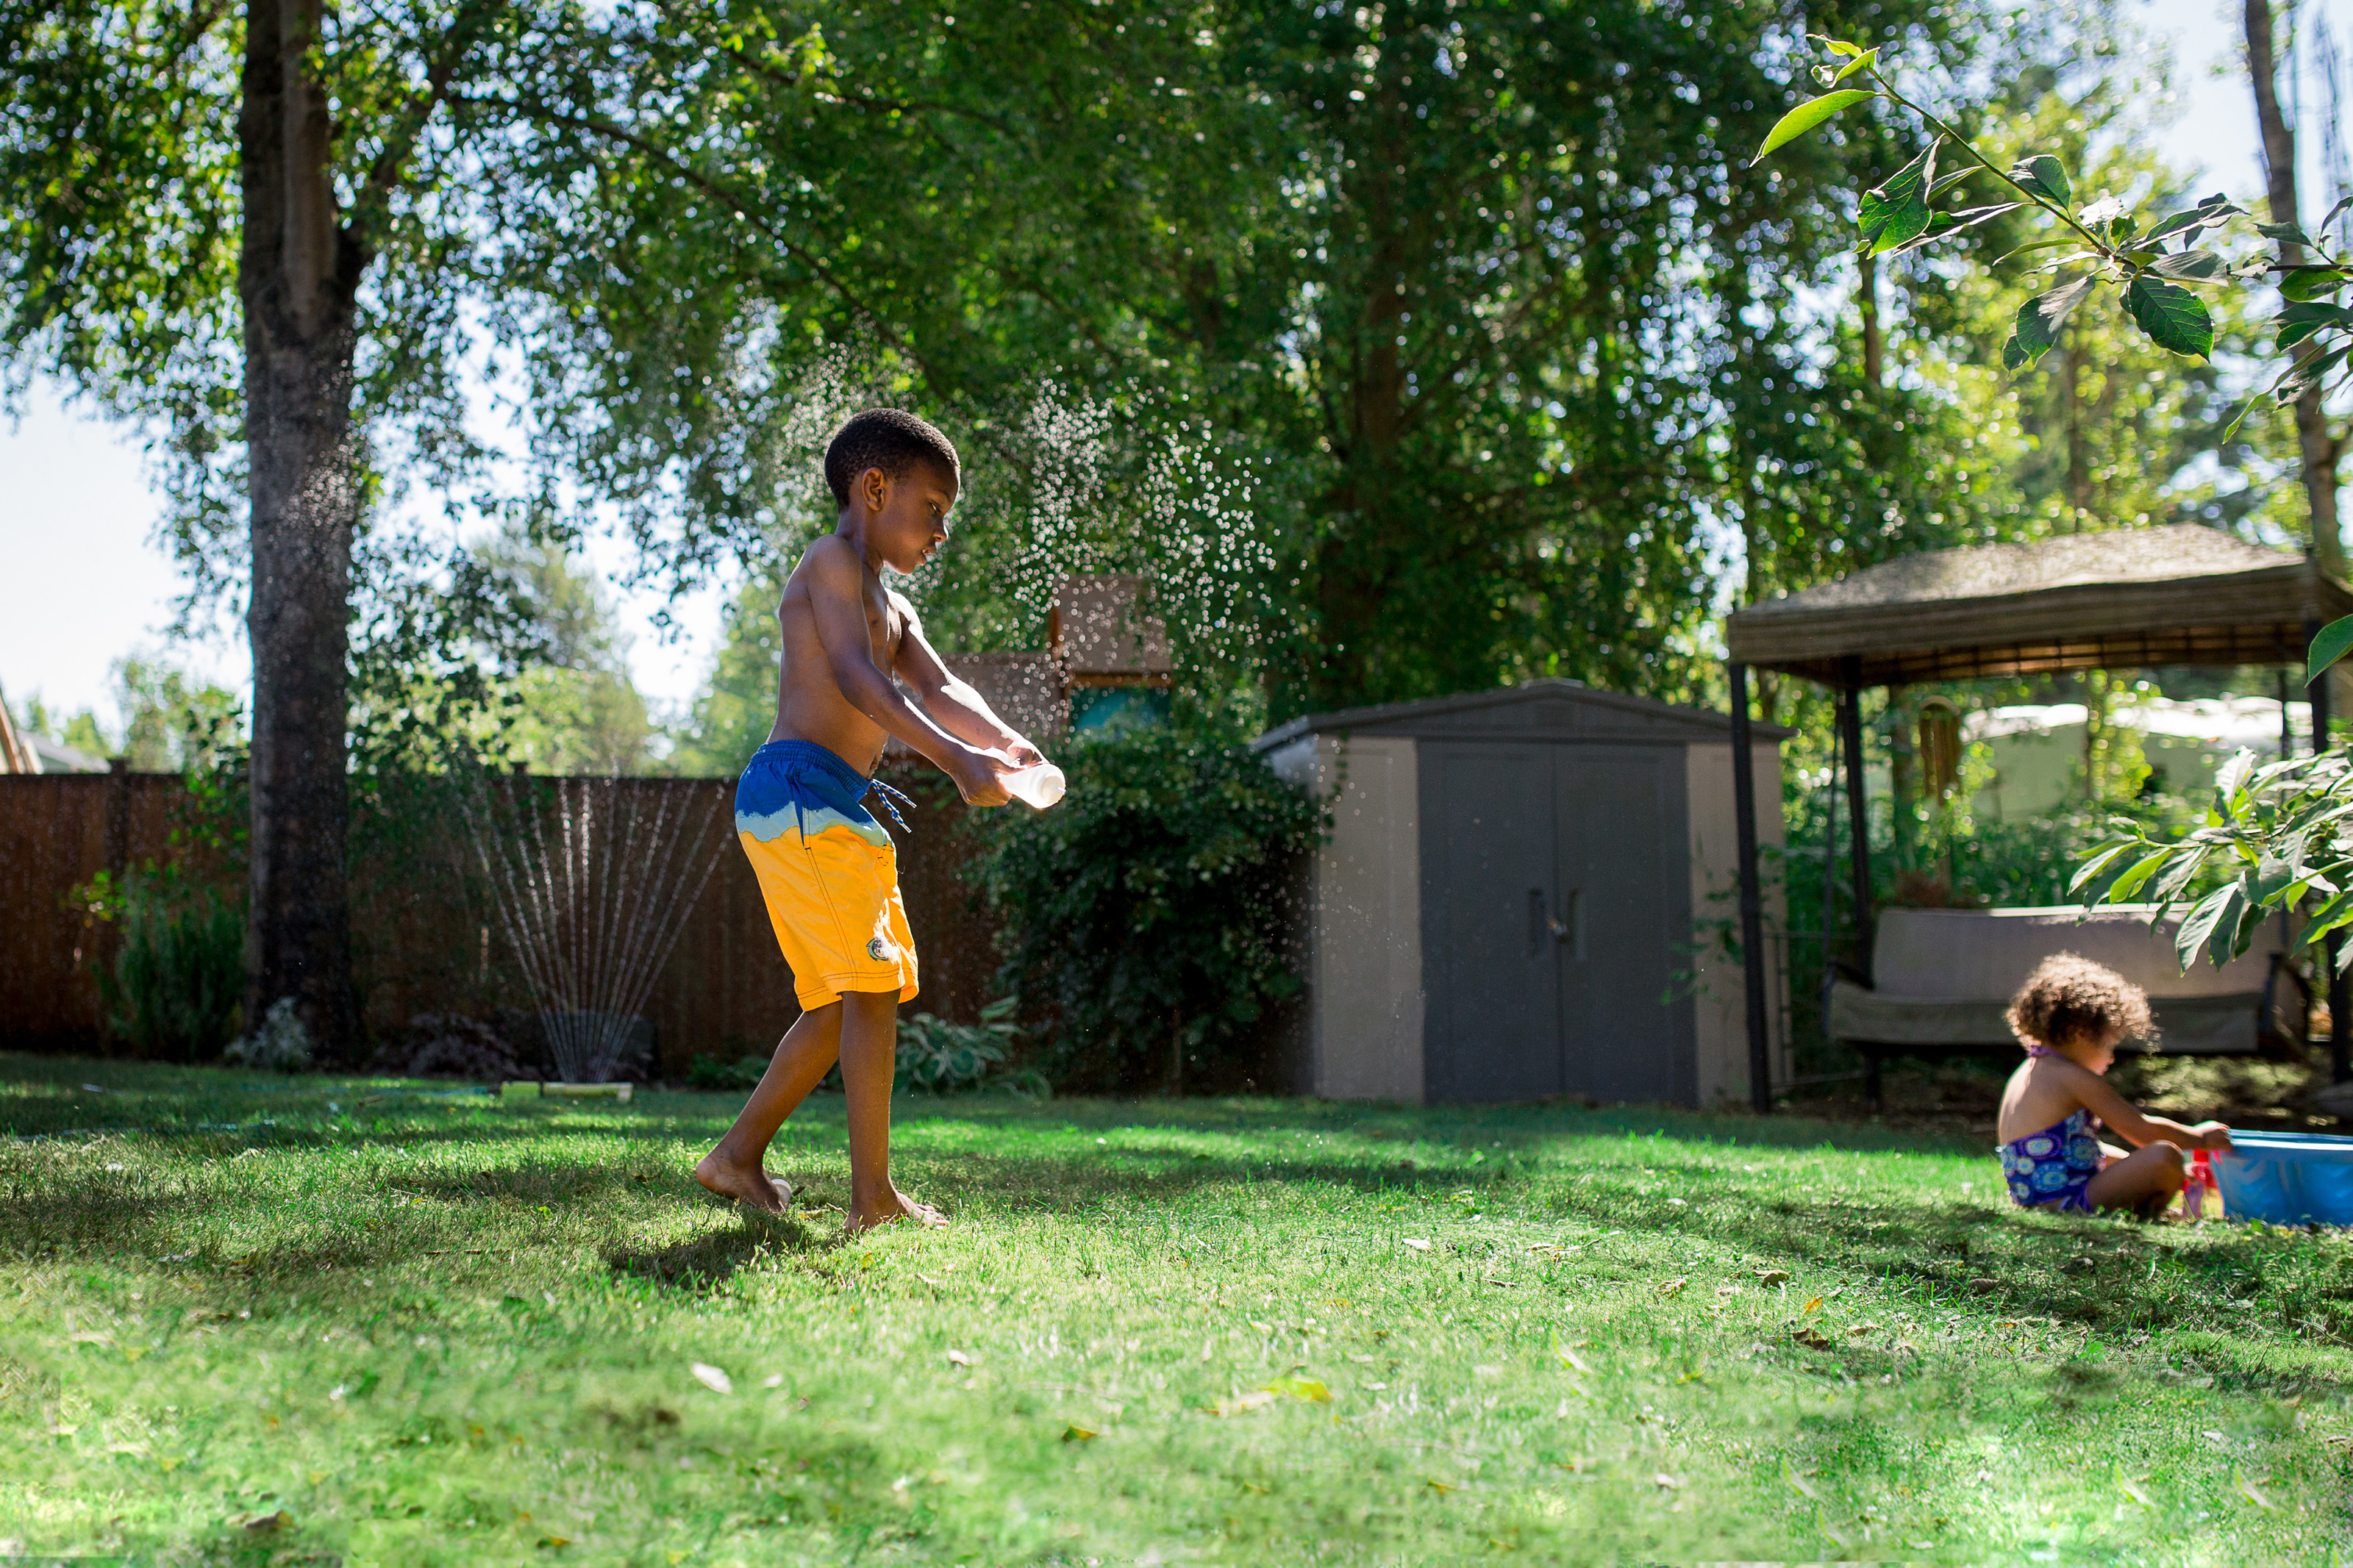 Boy playing a back yard sprinkler in summer